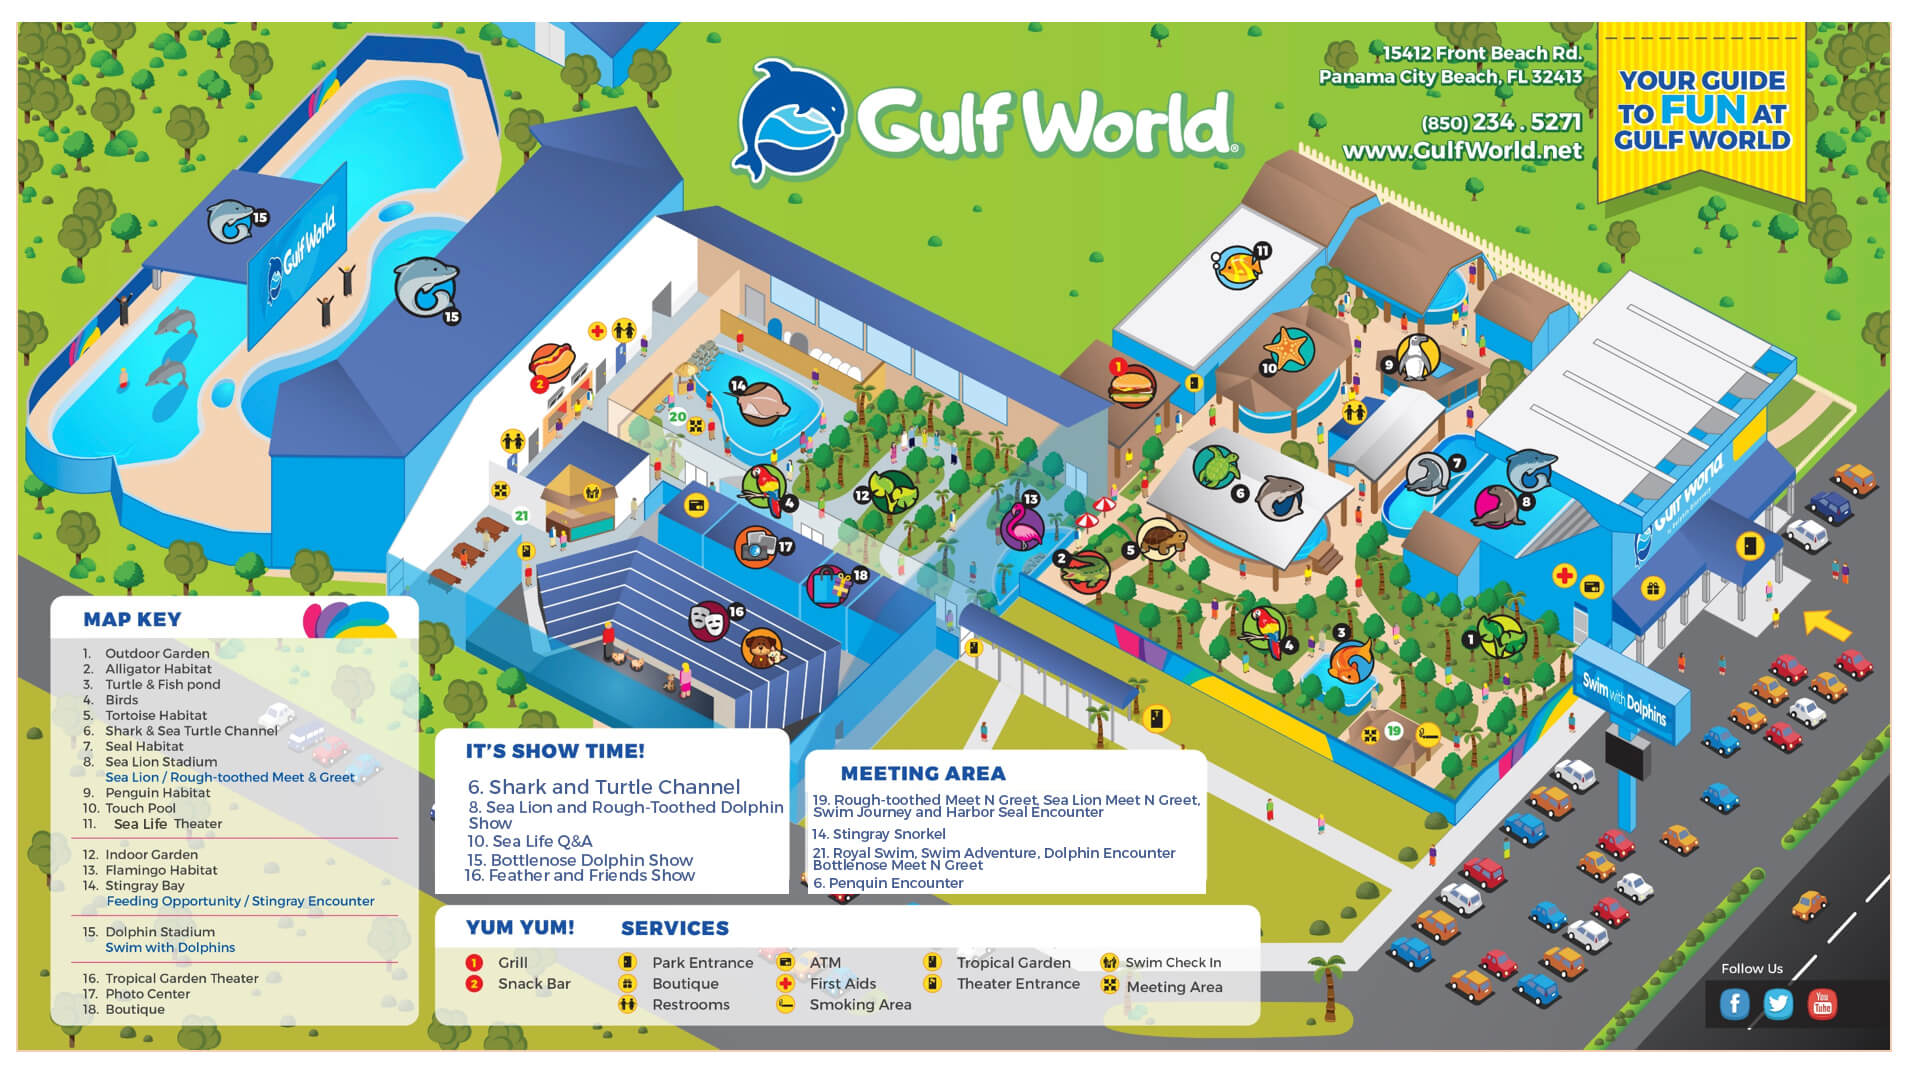 Show schedule gulf world marine park limited seating for these shows gumiabroncs Choice Image